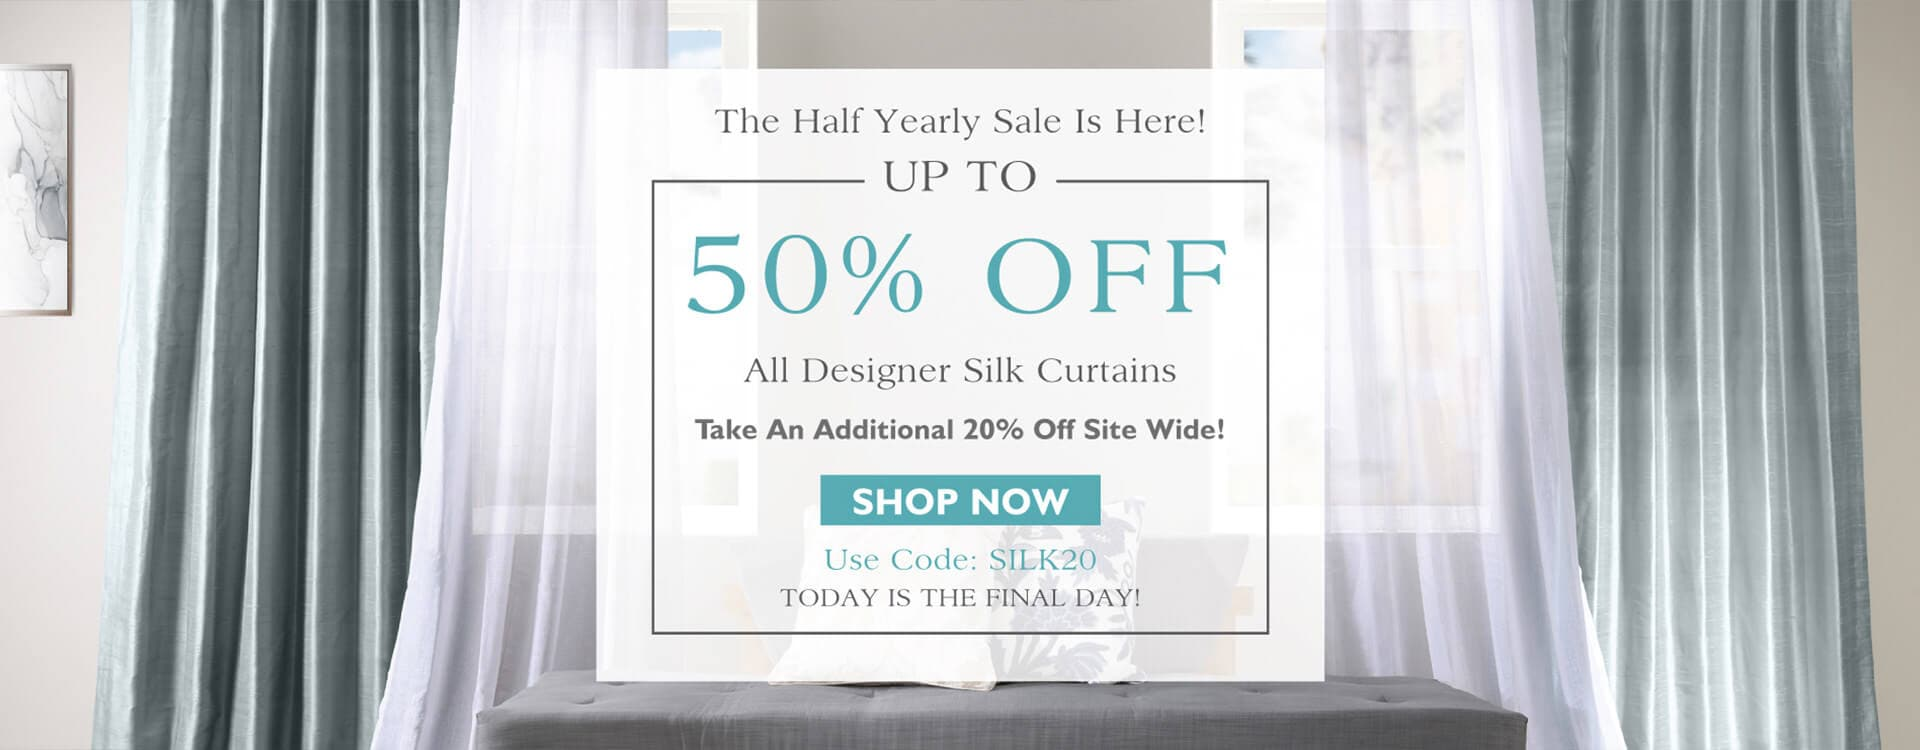 Up To 50% Off Designer Silk Curtains